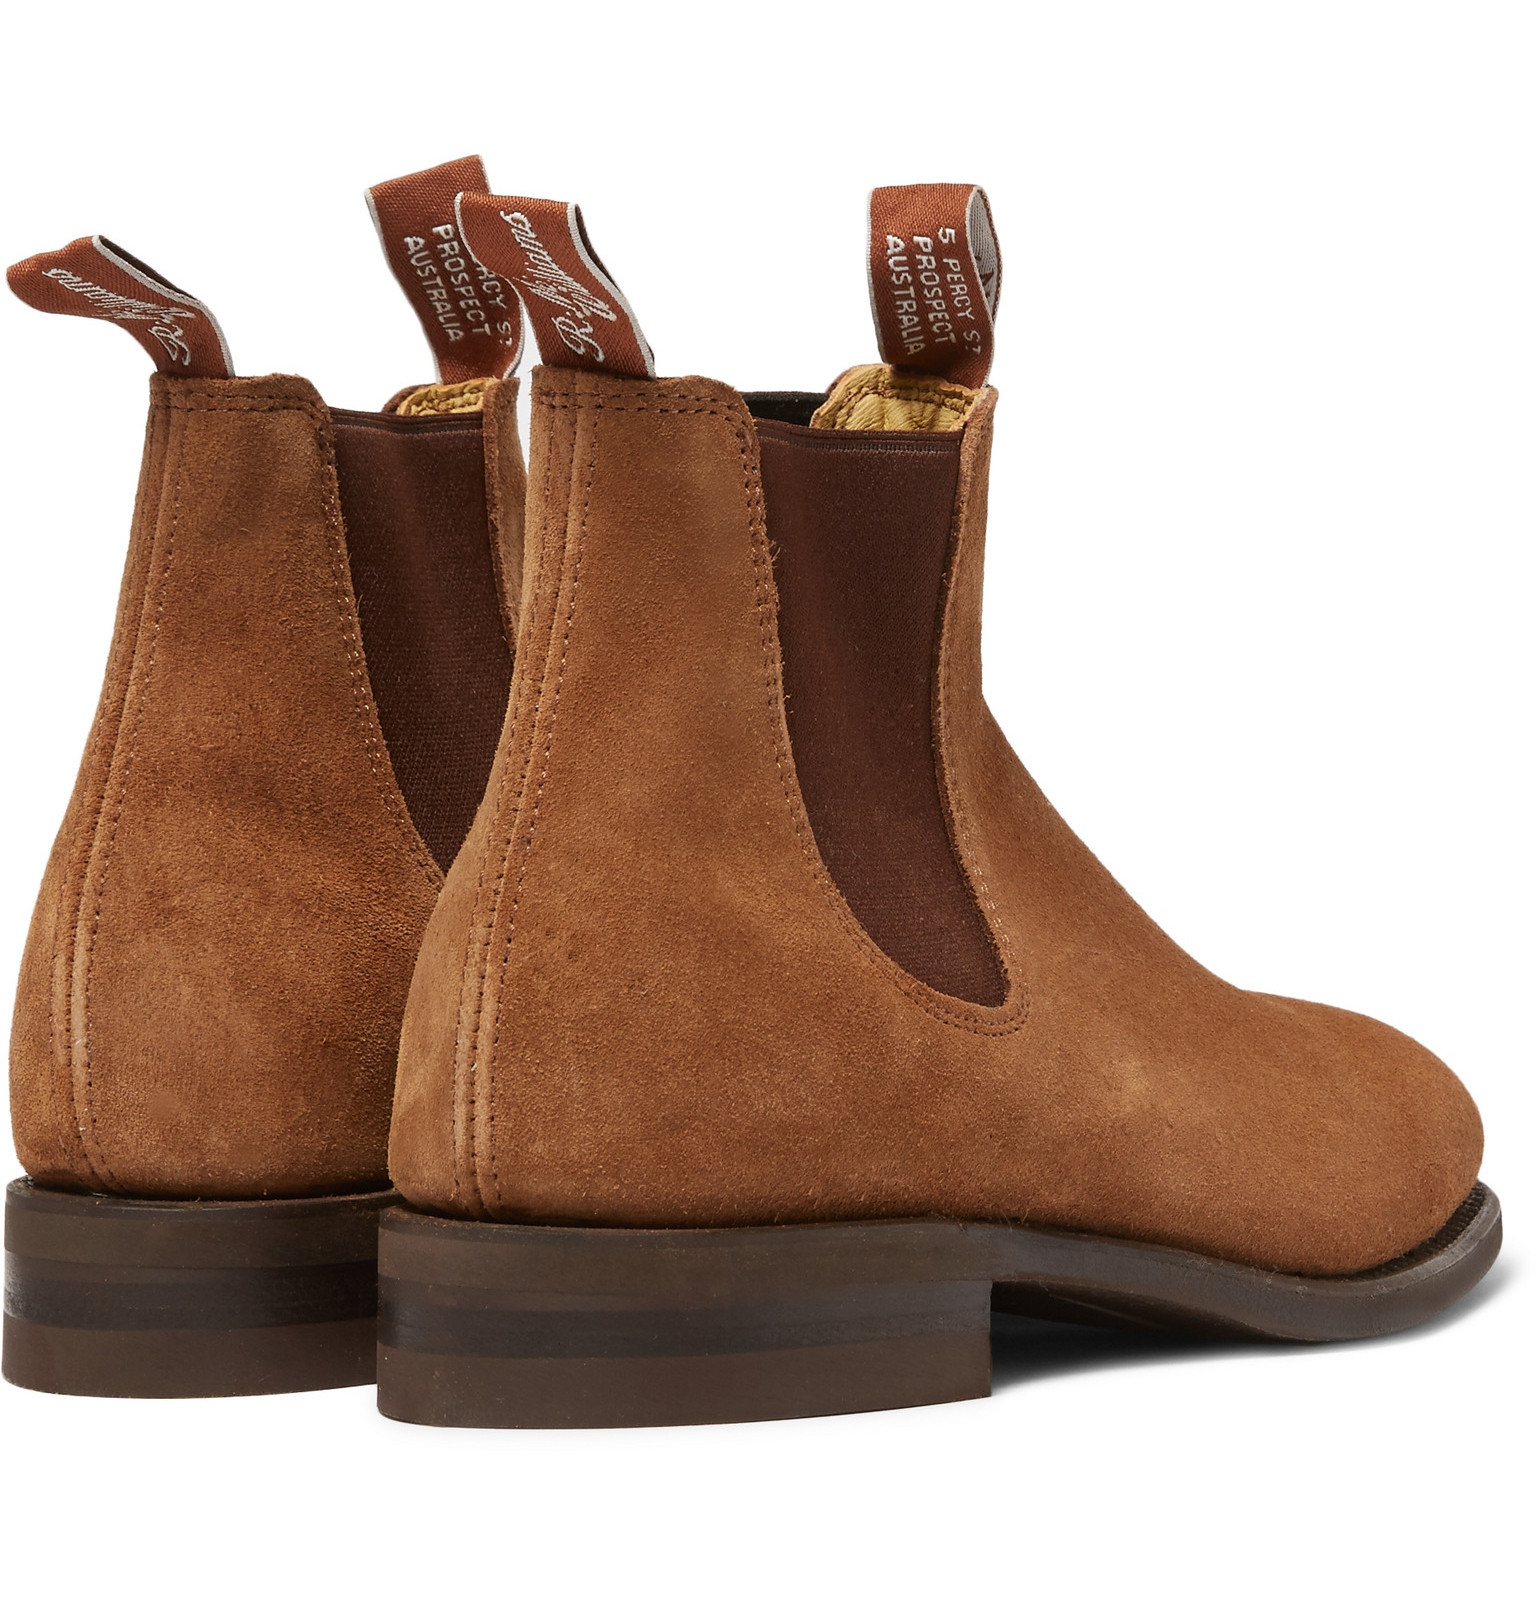 Lyst - R.M. Williams Suede Chelsea Boots in Brown for Men